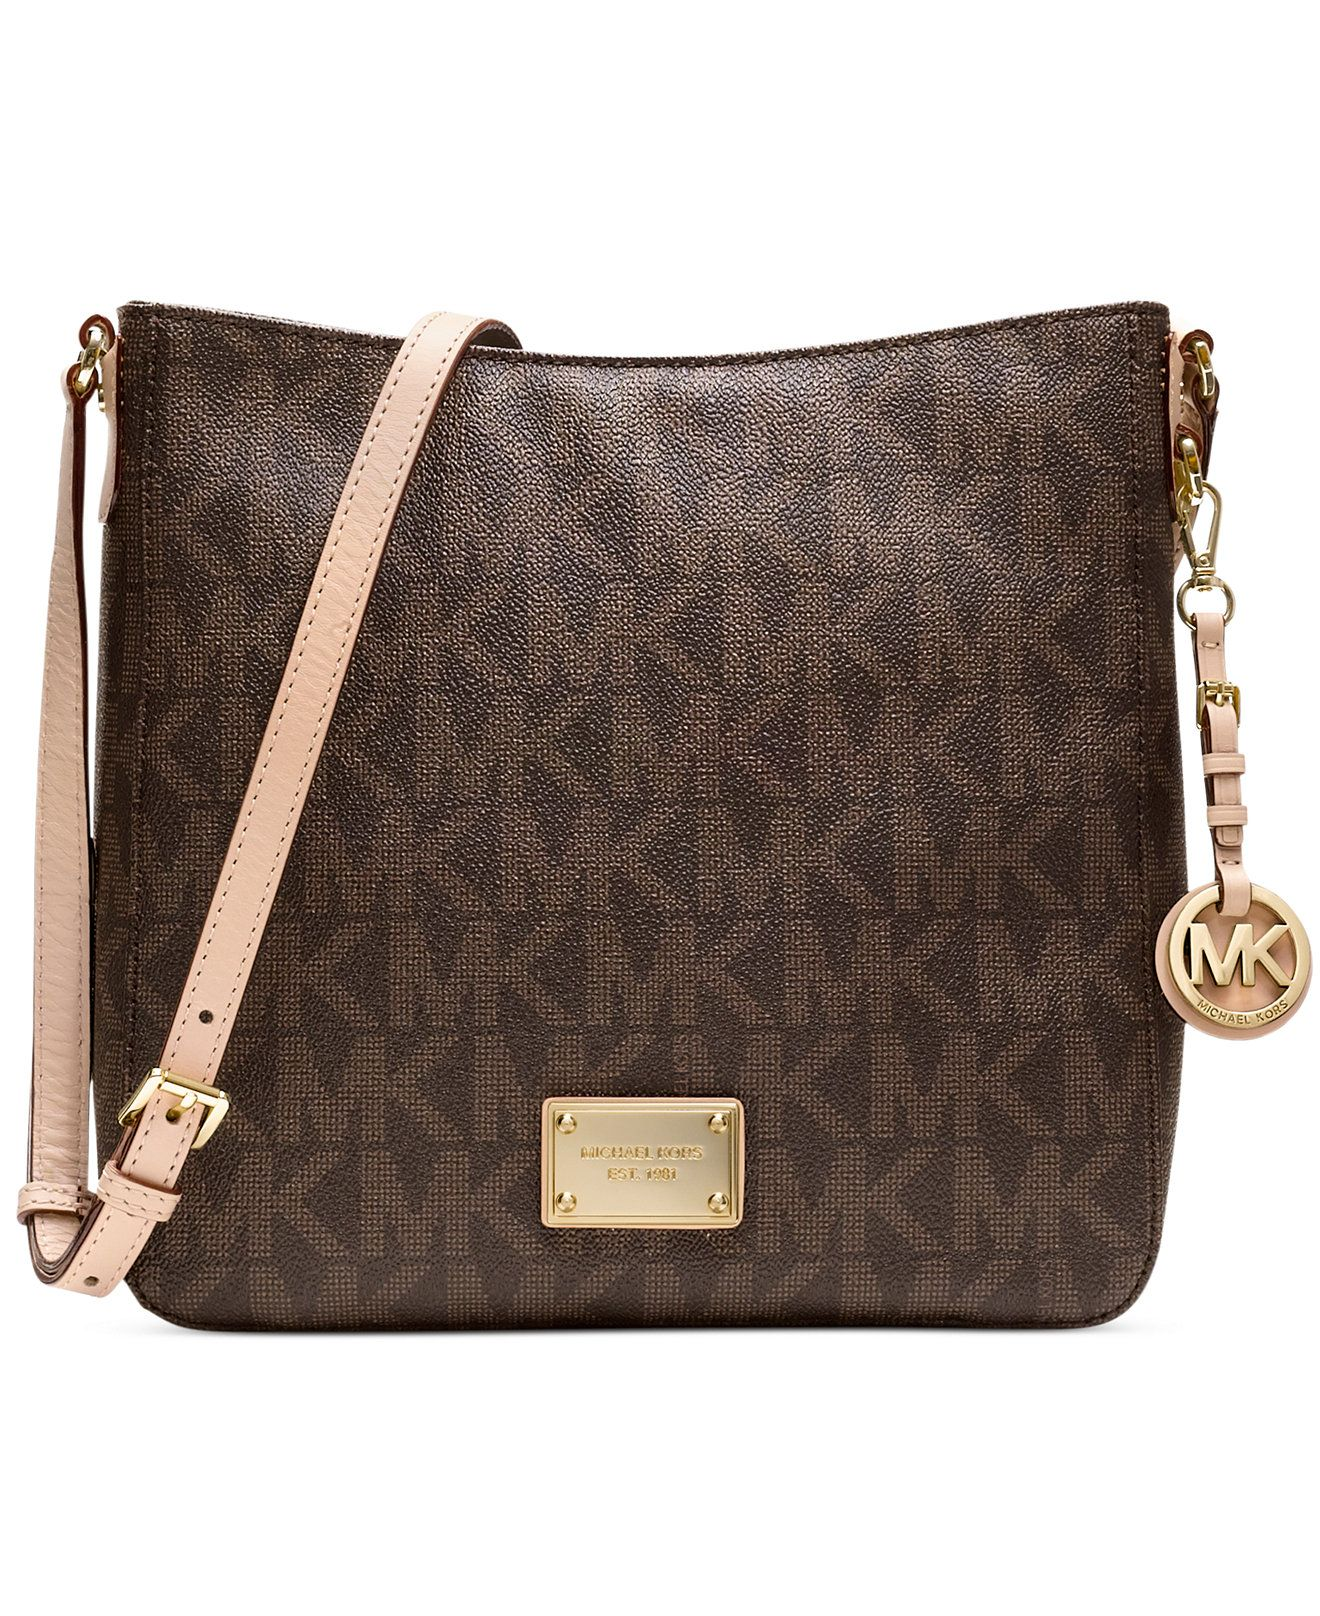 MICHAEL Michael Kors Jet Set Travel Large Messenger Bag - Handbags & Accessories - Macy's